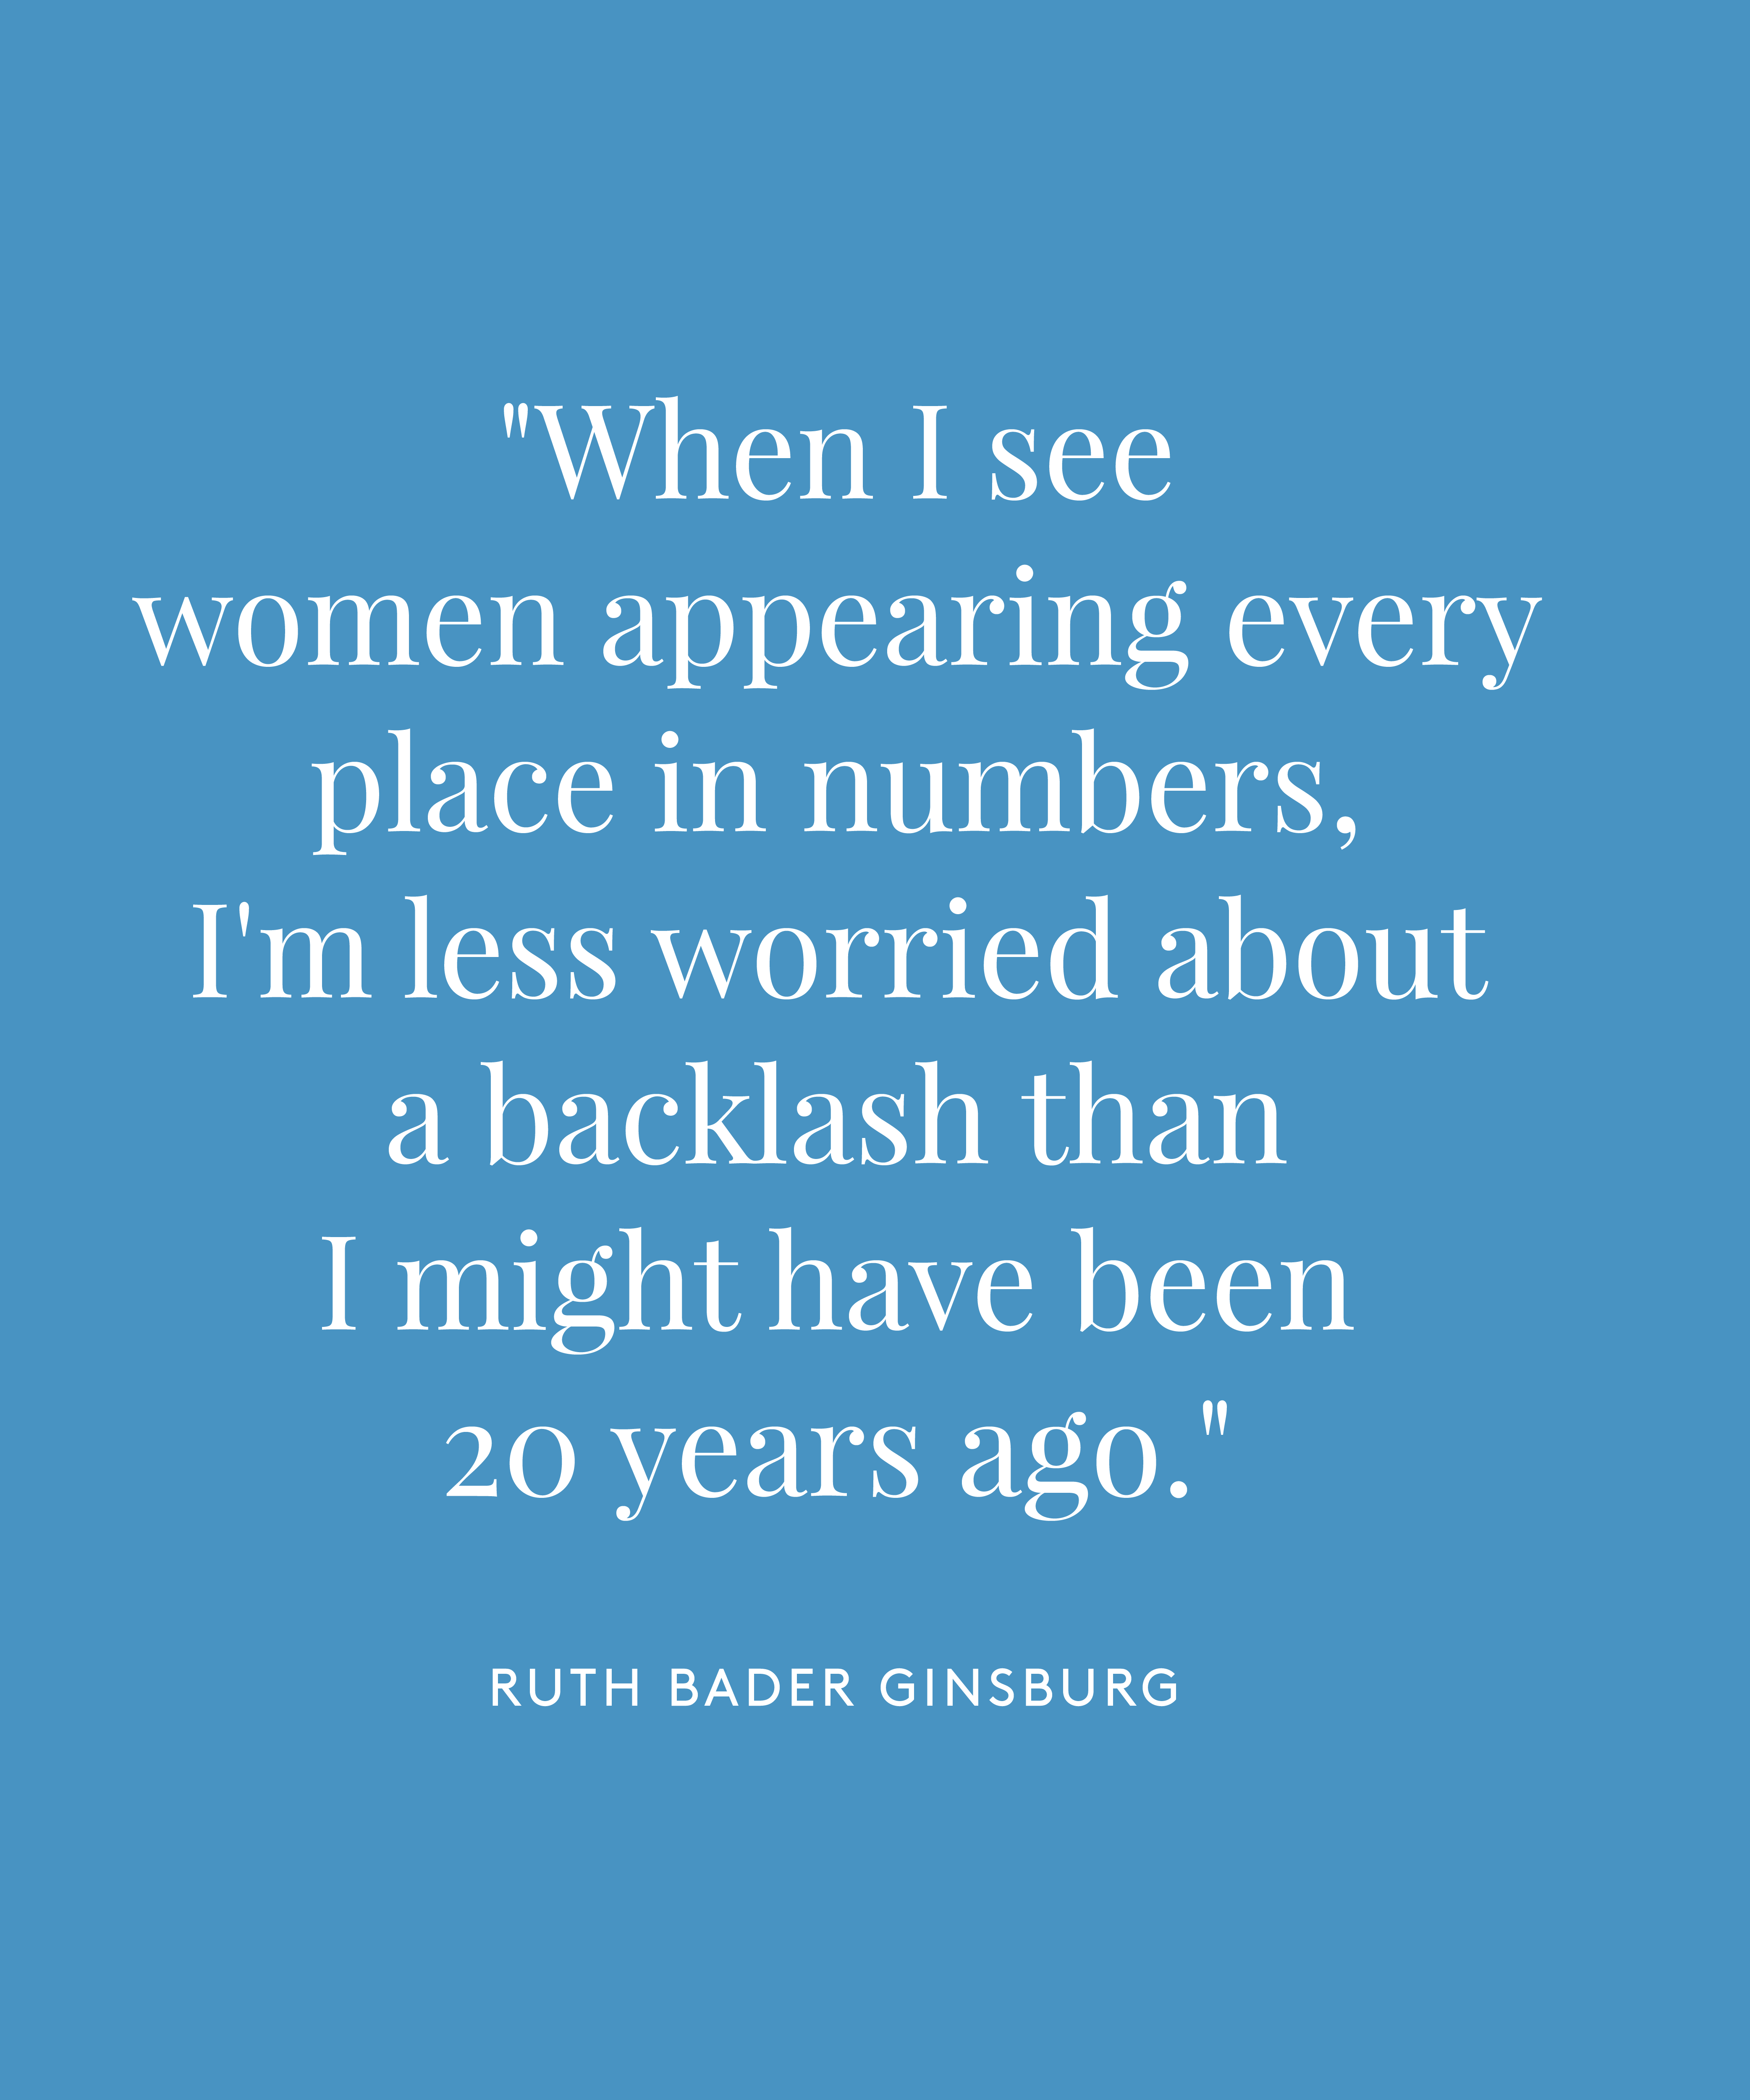 Celebrate Rbgs 85th Birthday With Her Best Quotes Notorious Rbg